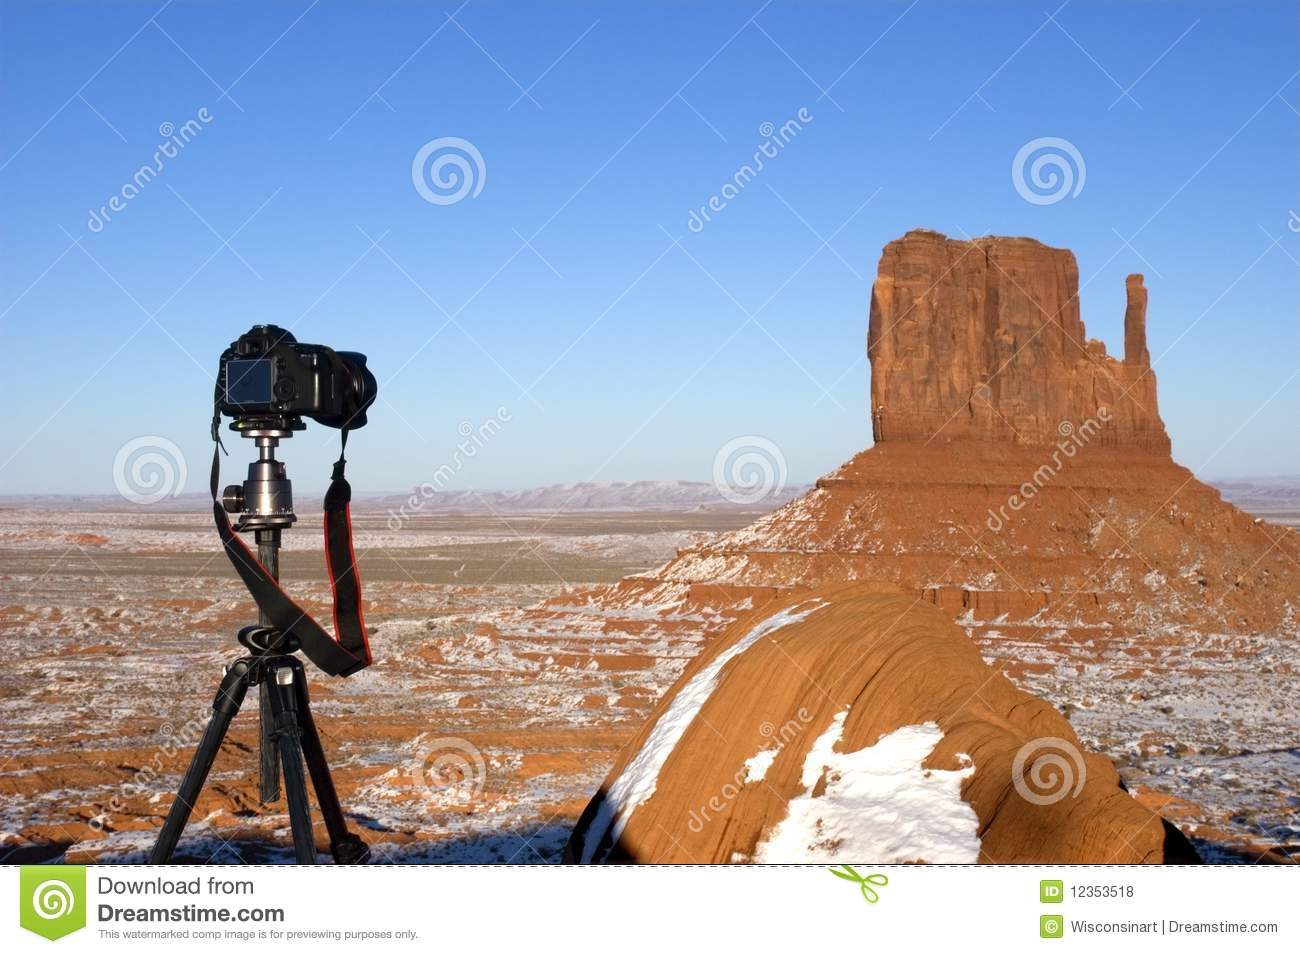 Landscape and Travel Photography, Camera Hobby